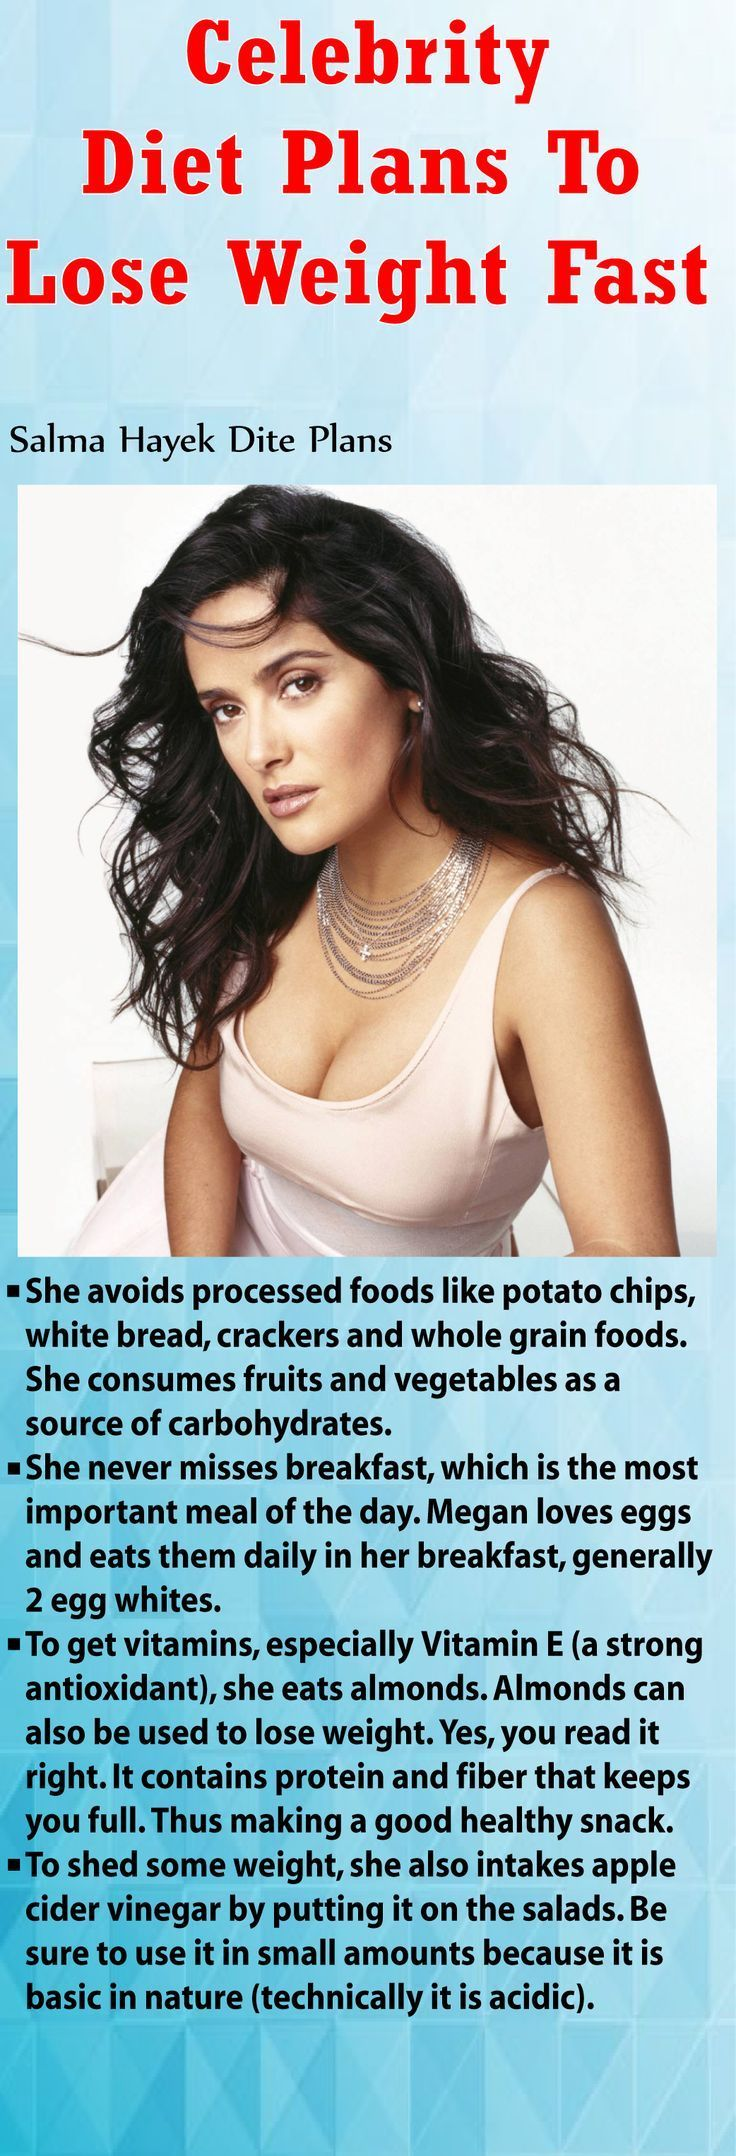 Top Celebrity Diets | Health & Beauty Singapore